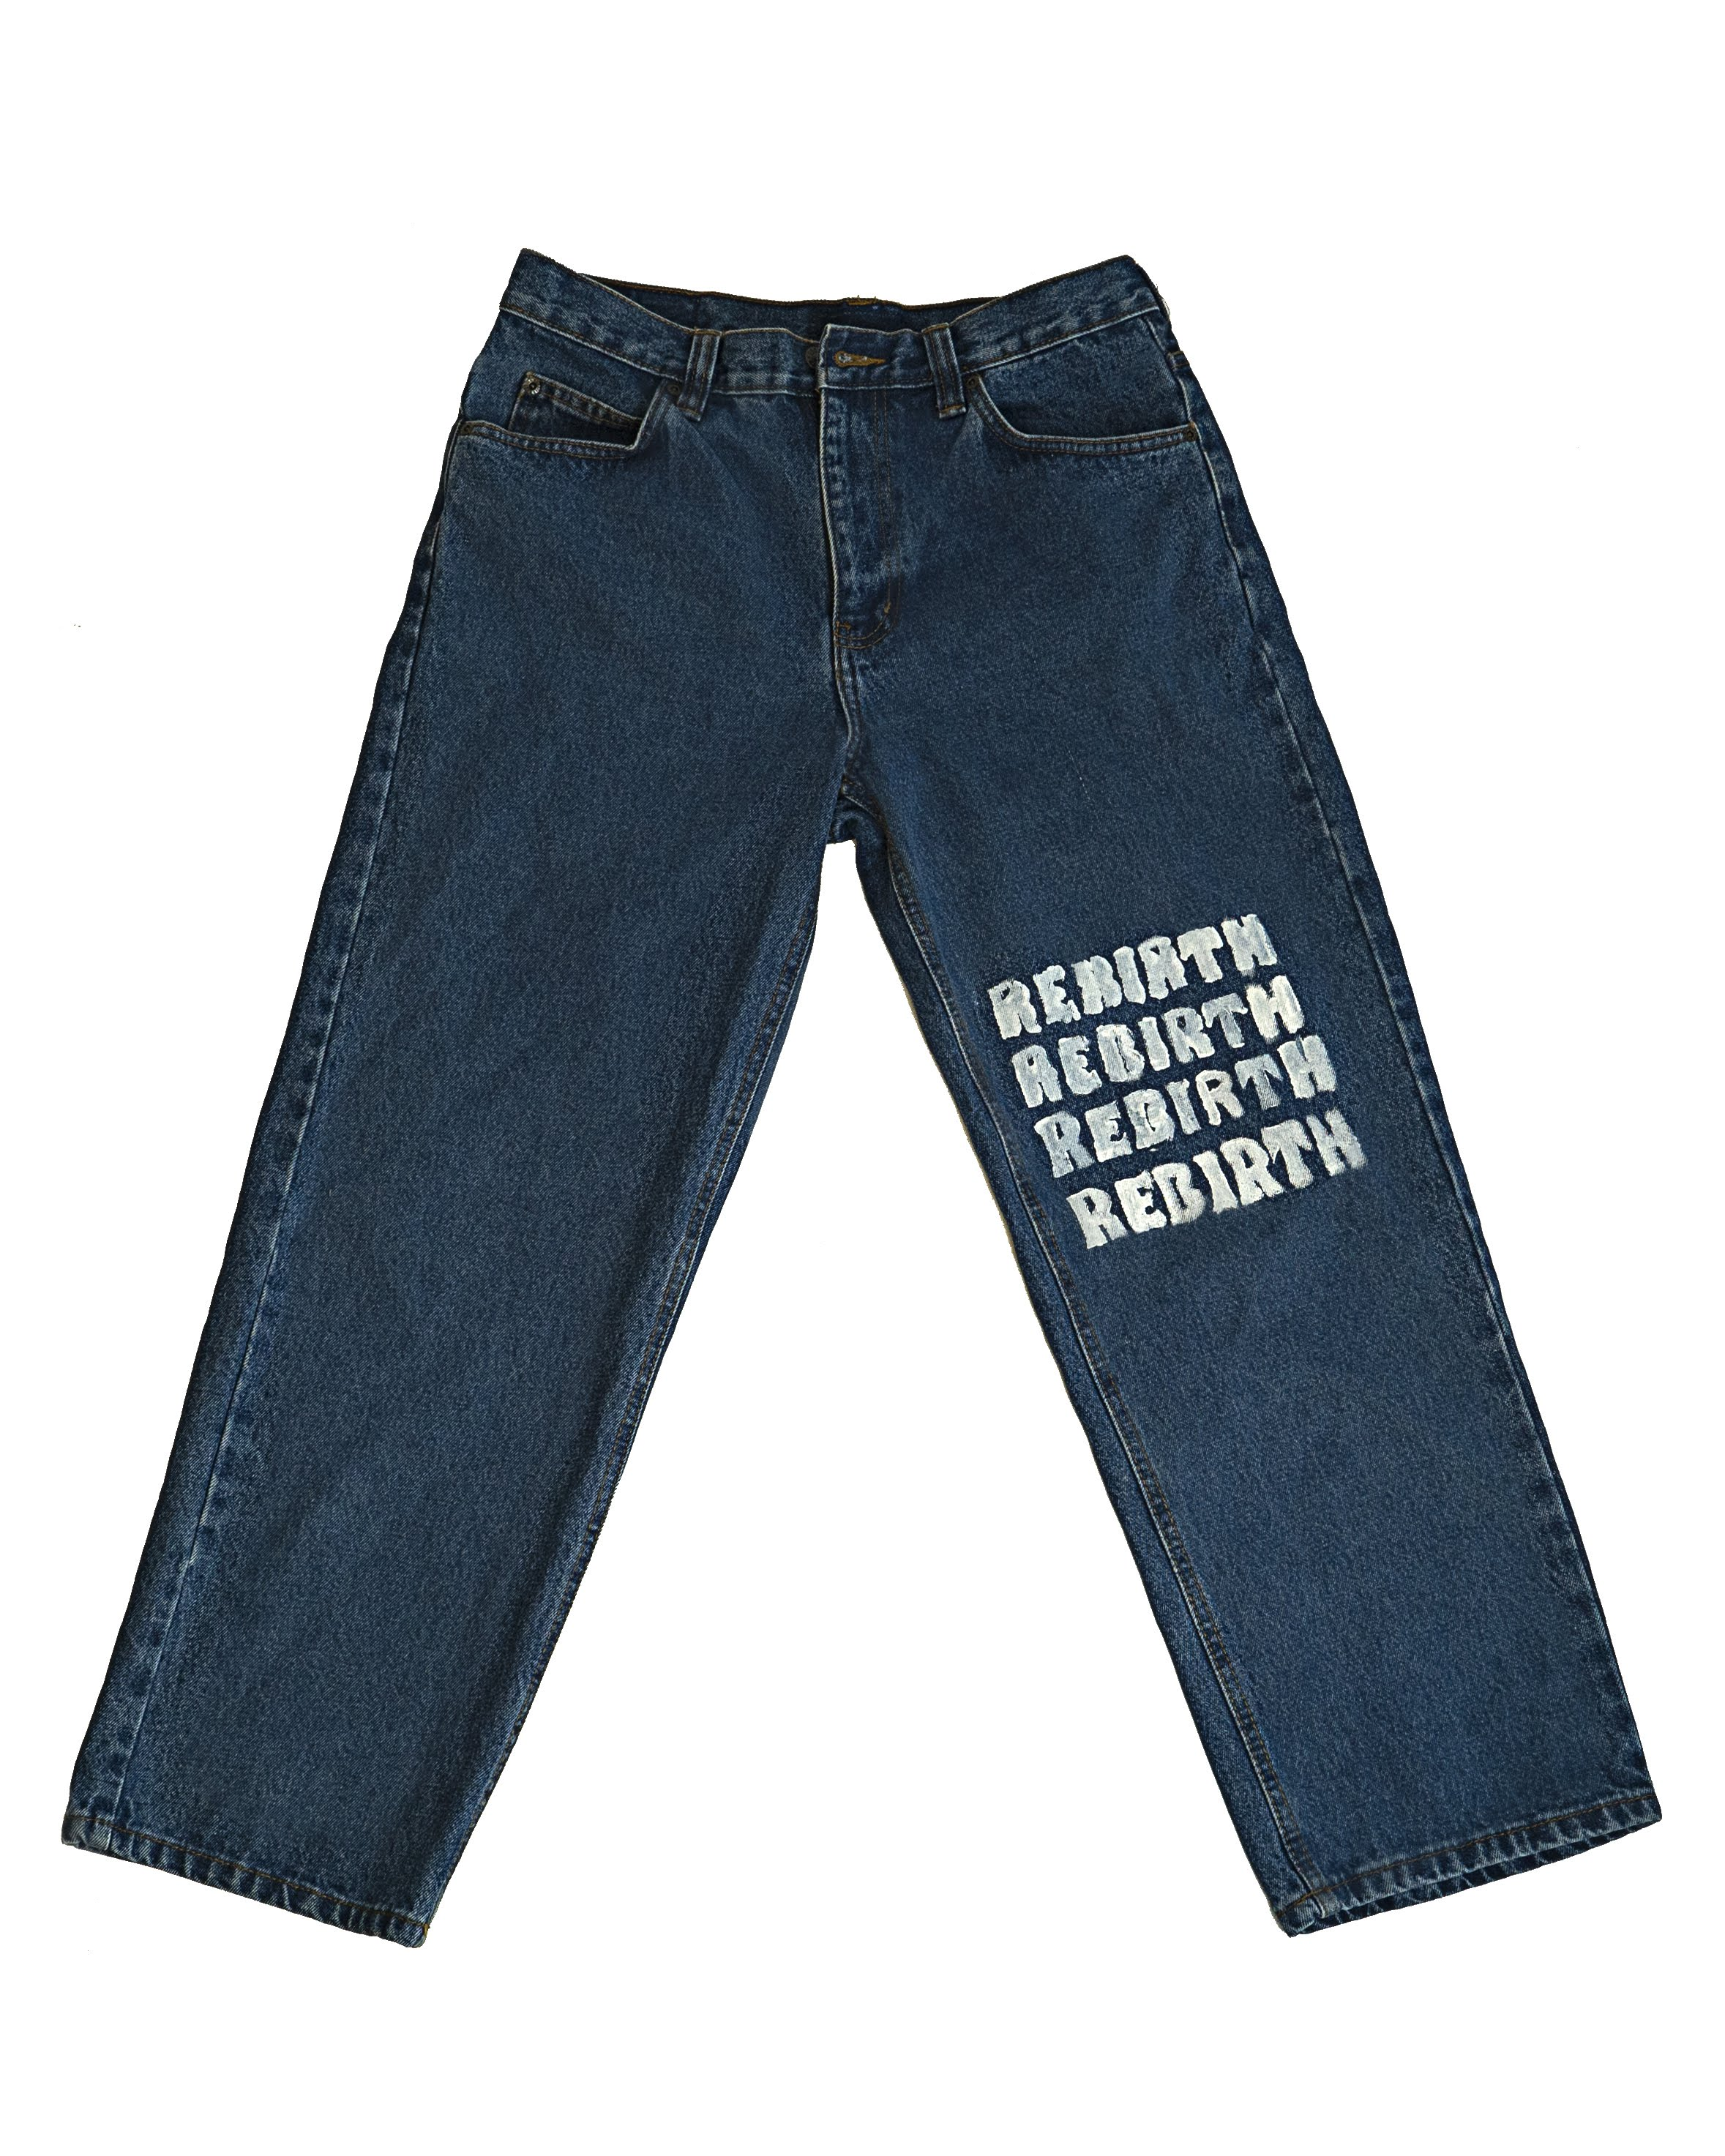 Rebirth Custom Hand Painted Denim Jeans